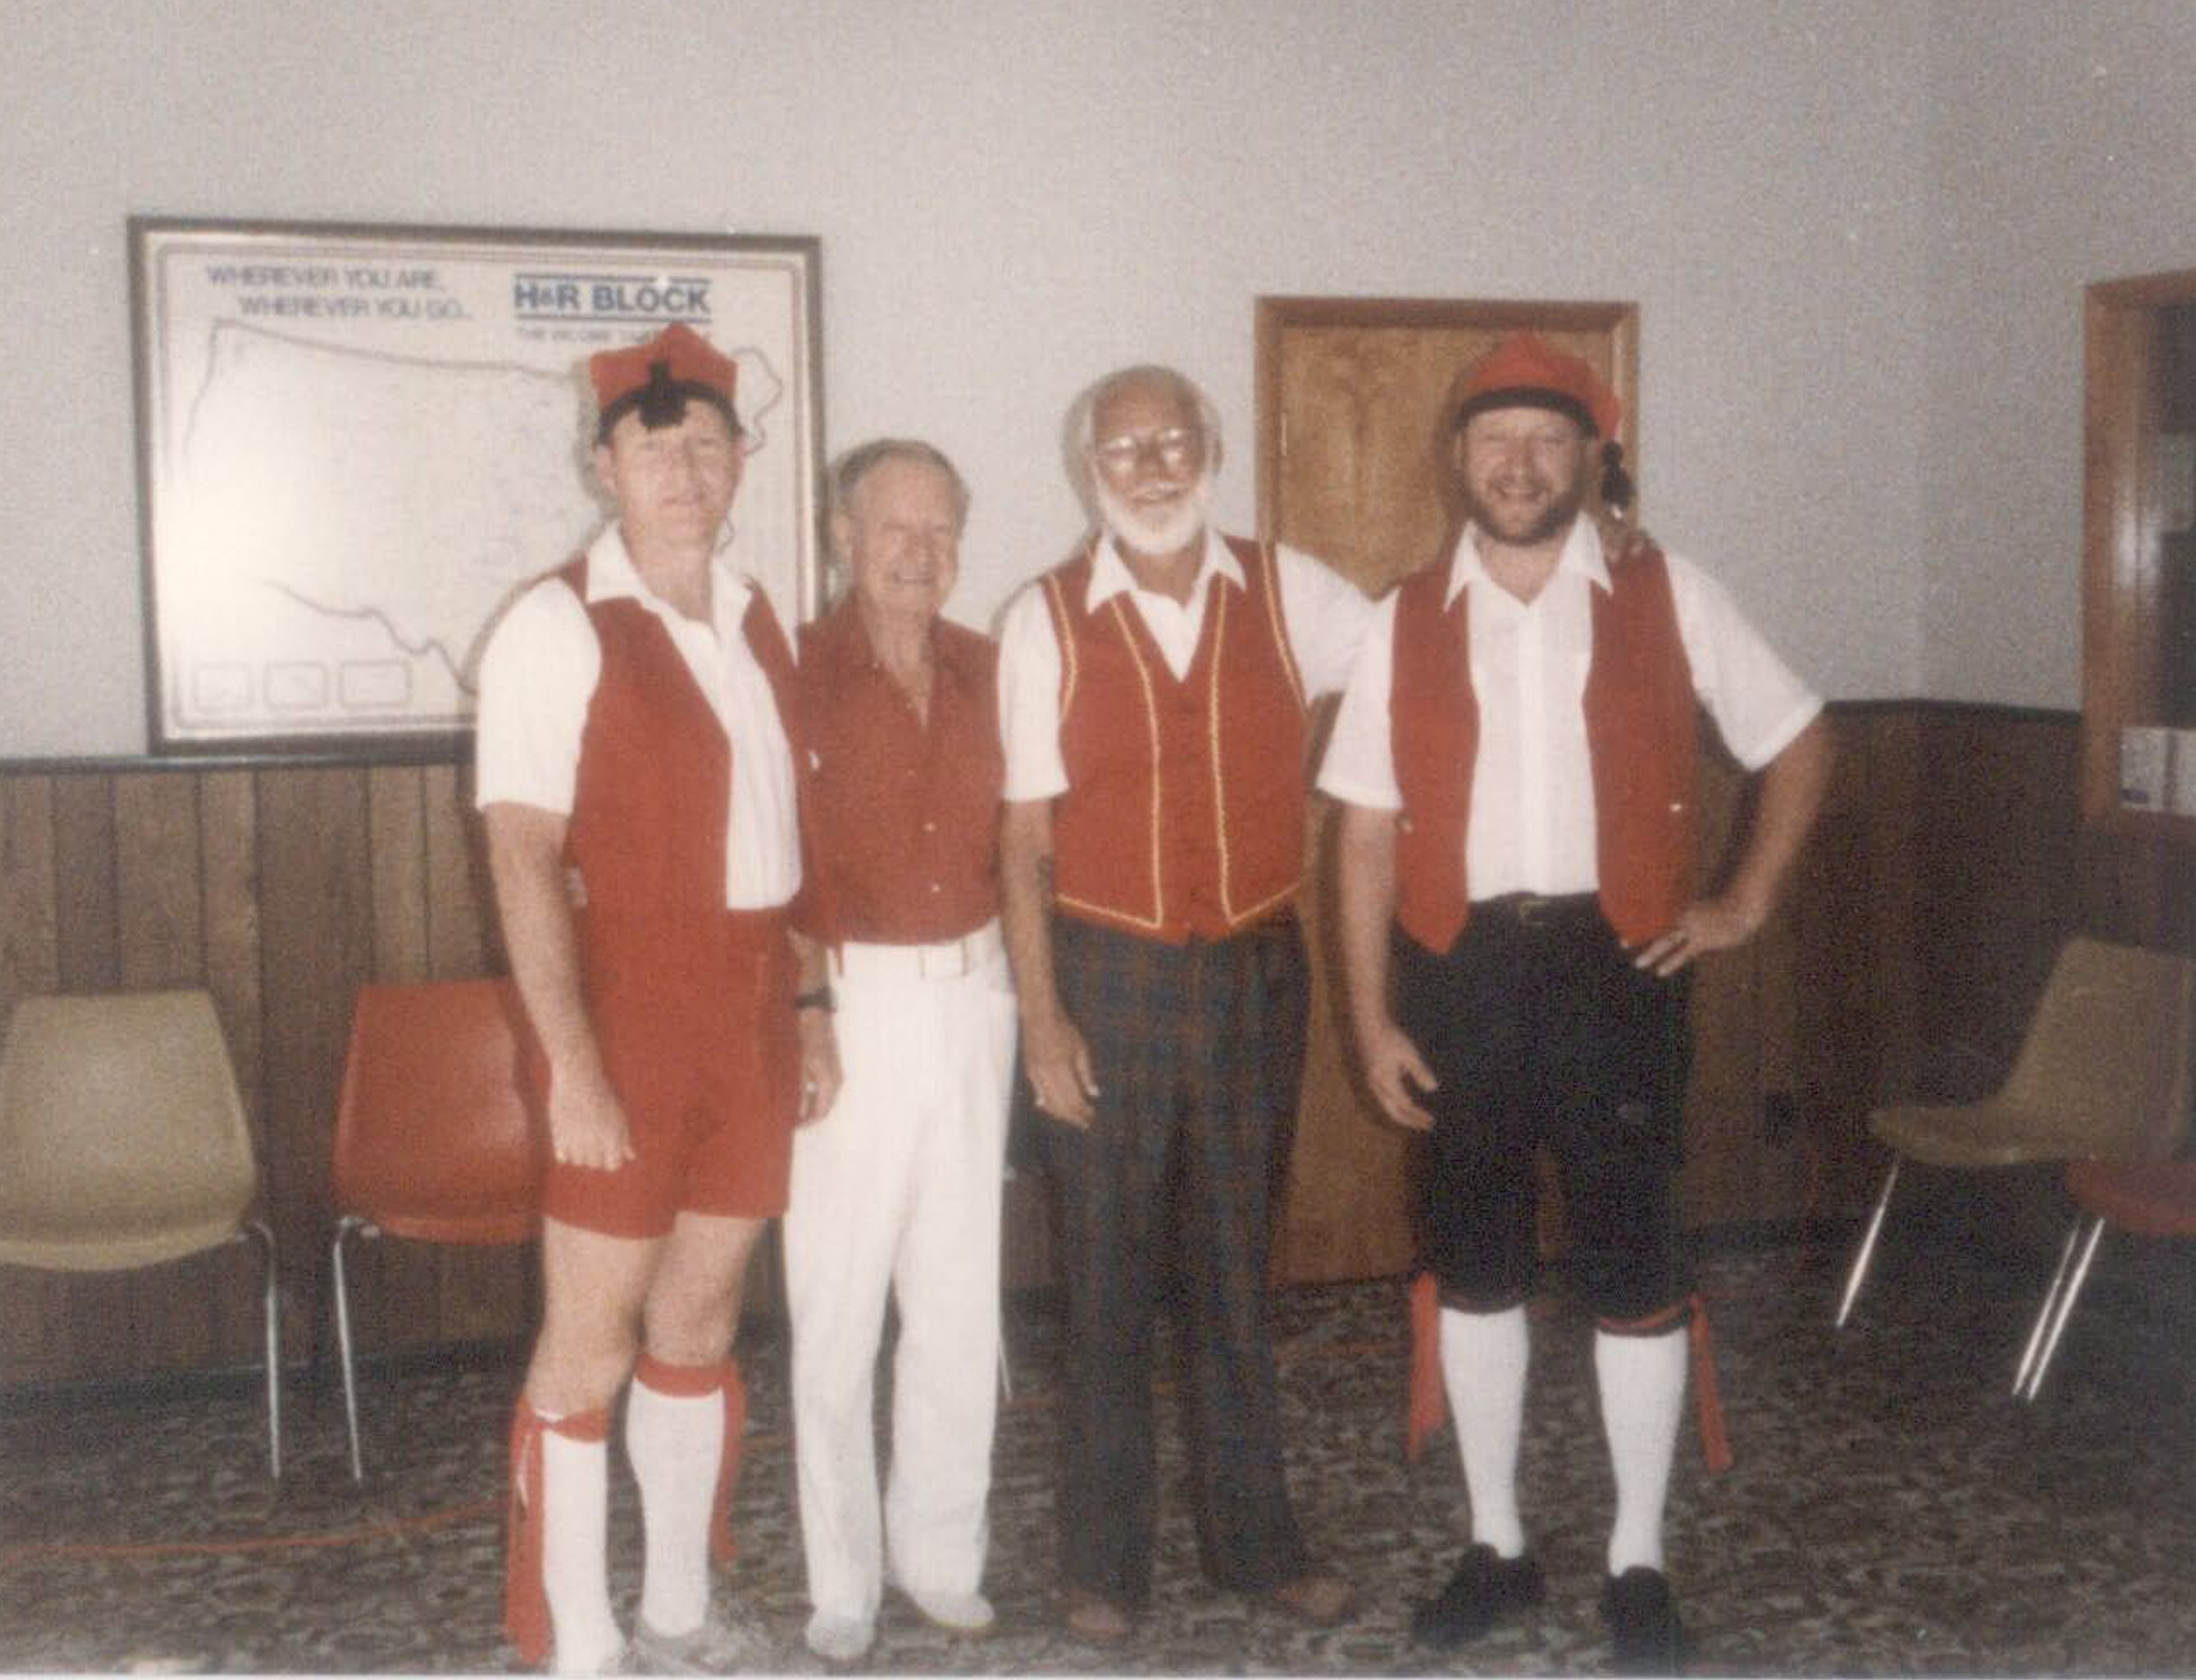 From left to right: Stan Kemp, Cass Kemp, Dan Plank, Bill Kemp.